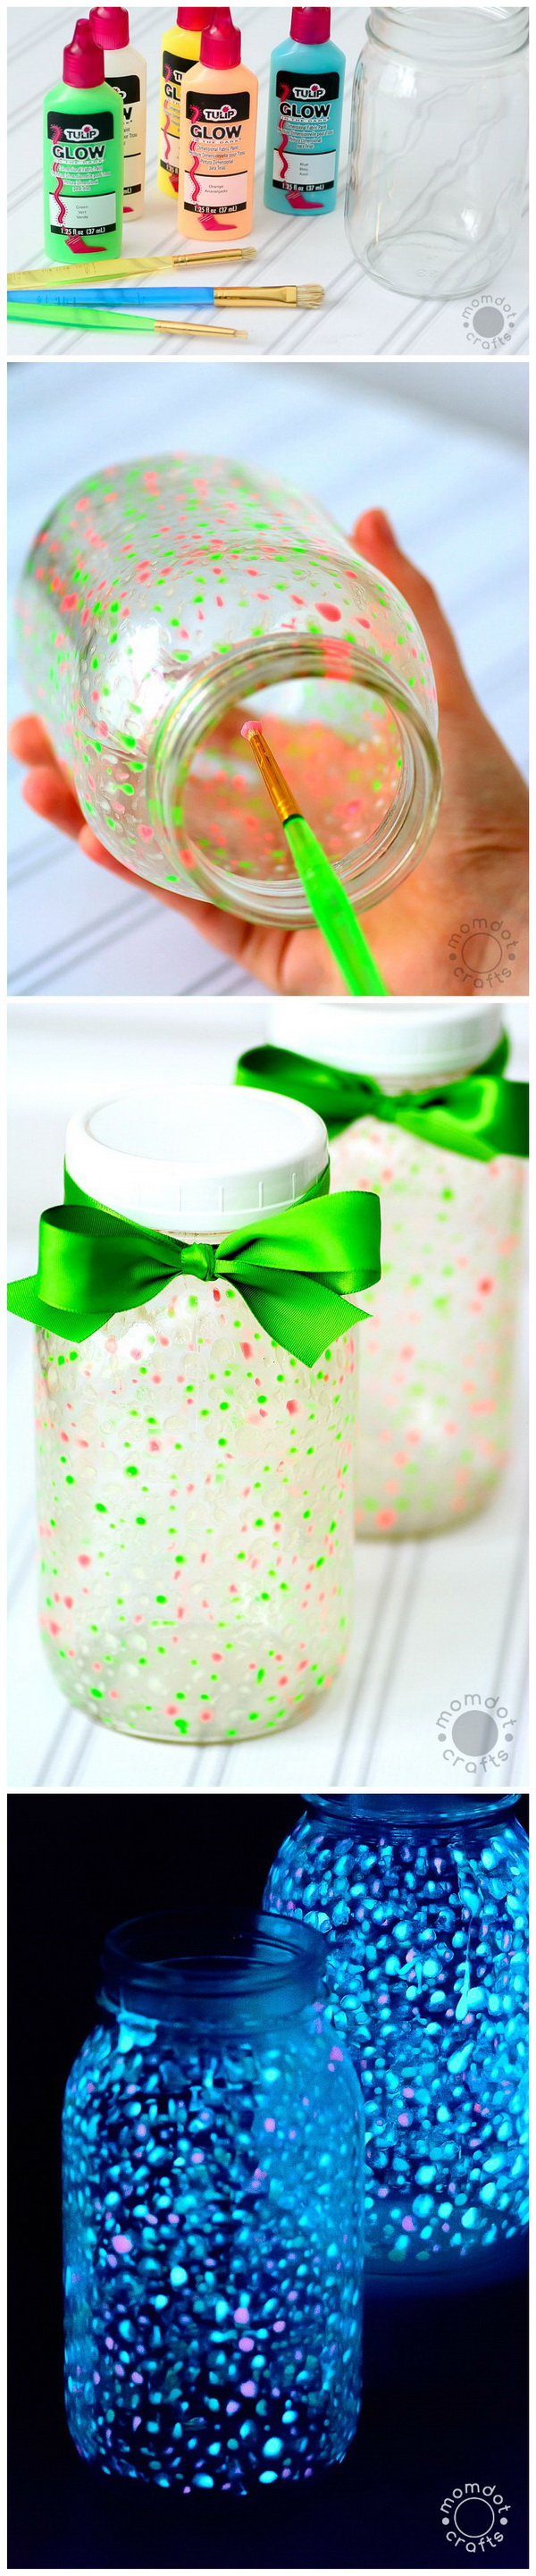 DIY Fairy Glow Galaxy Jars. DIY fairy glow galaxy jars! Great for late nights, story times, camping and summer fun!